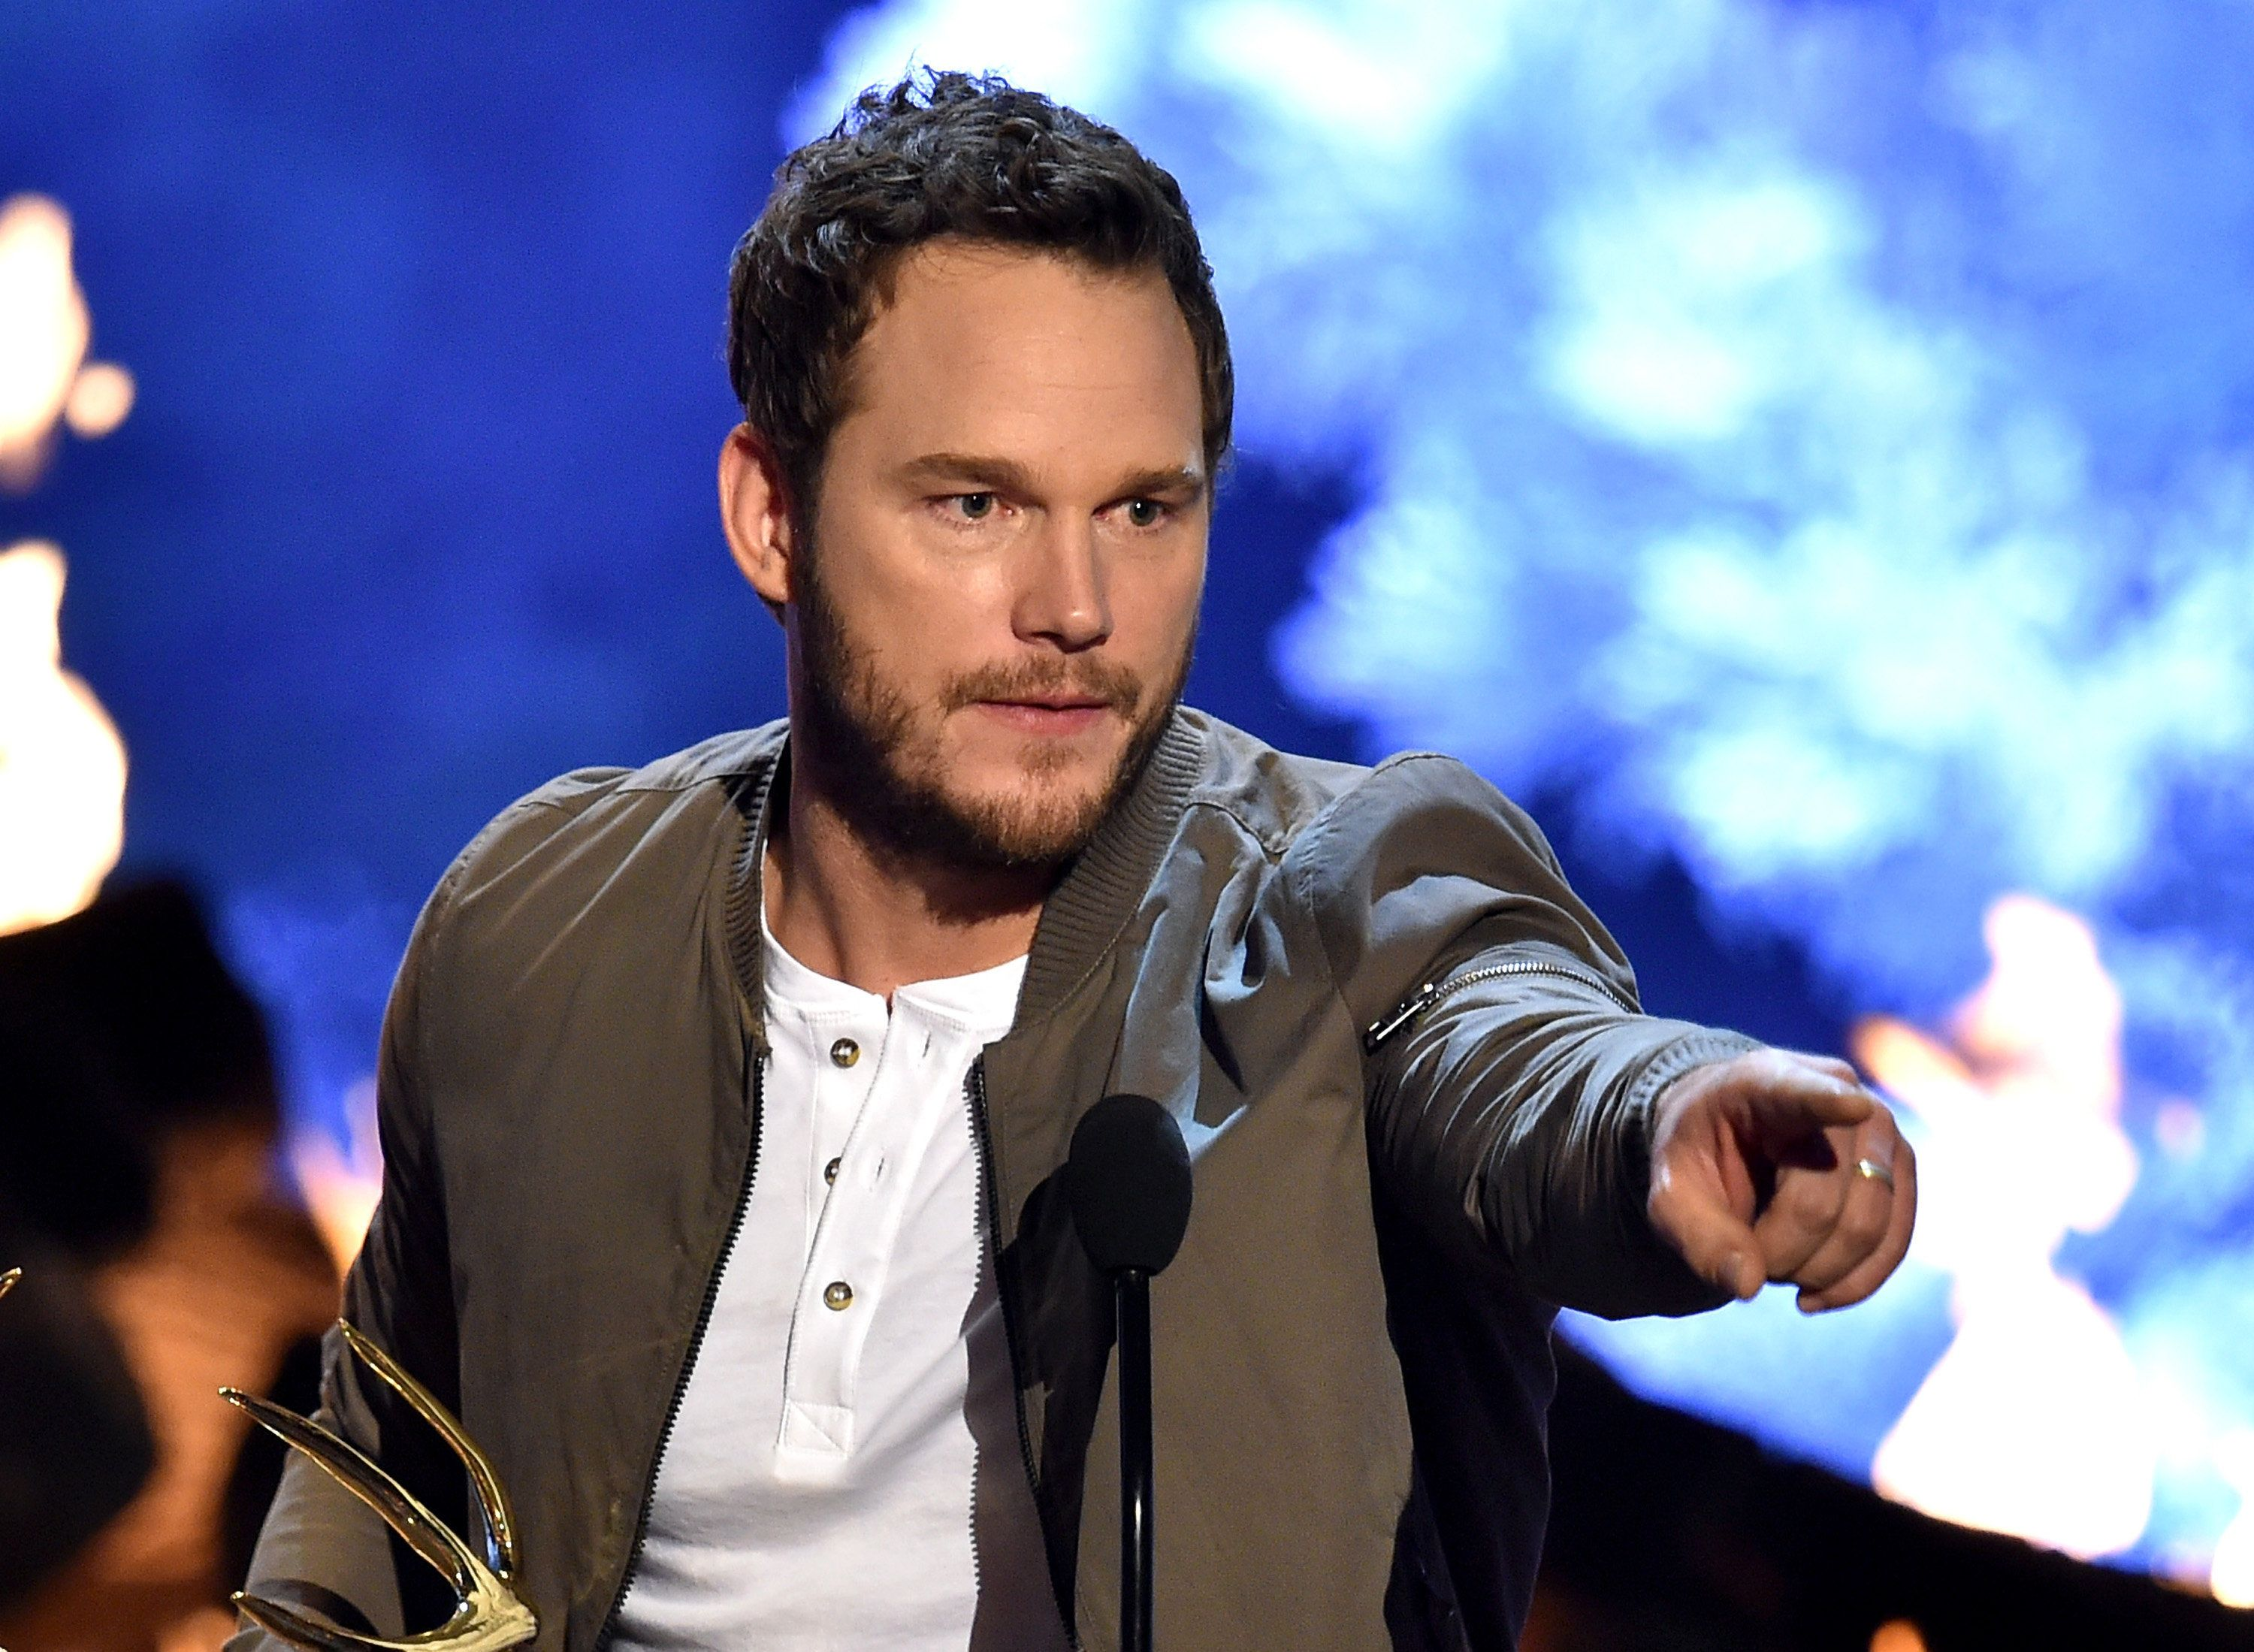 CULVER CITY, CA - JUNE 06:  Actor Chris Pratt accepts the Guy of the Year award onstage during Spike TV's Guys Choice 2015 at Sony Pictures Studios on June 6, 2015 in Culver City, California.  (Photo by Kevin Winter/Getty Images for Spike TV)